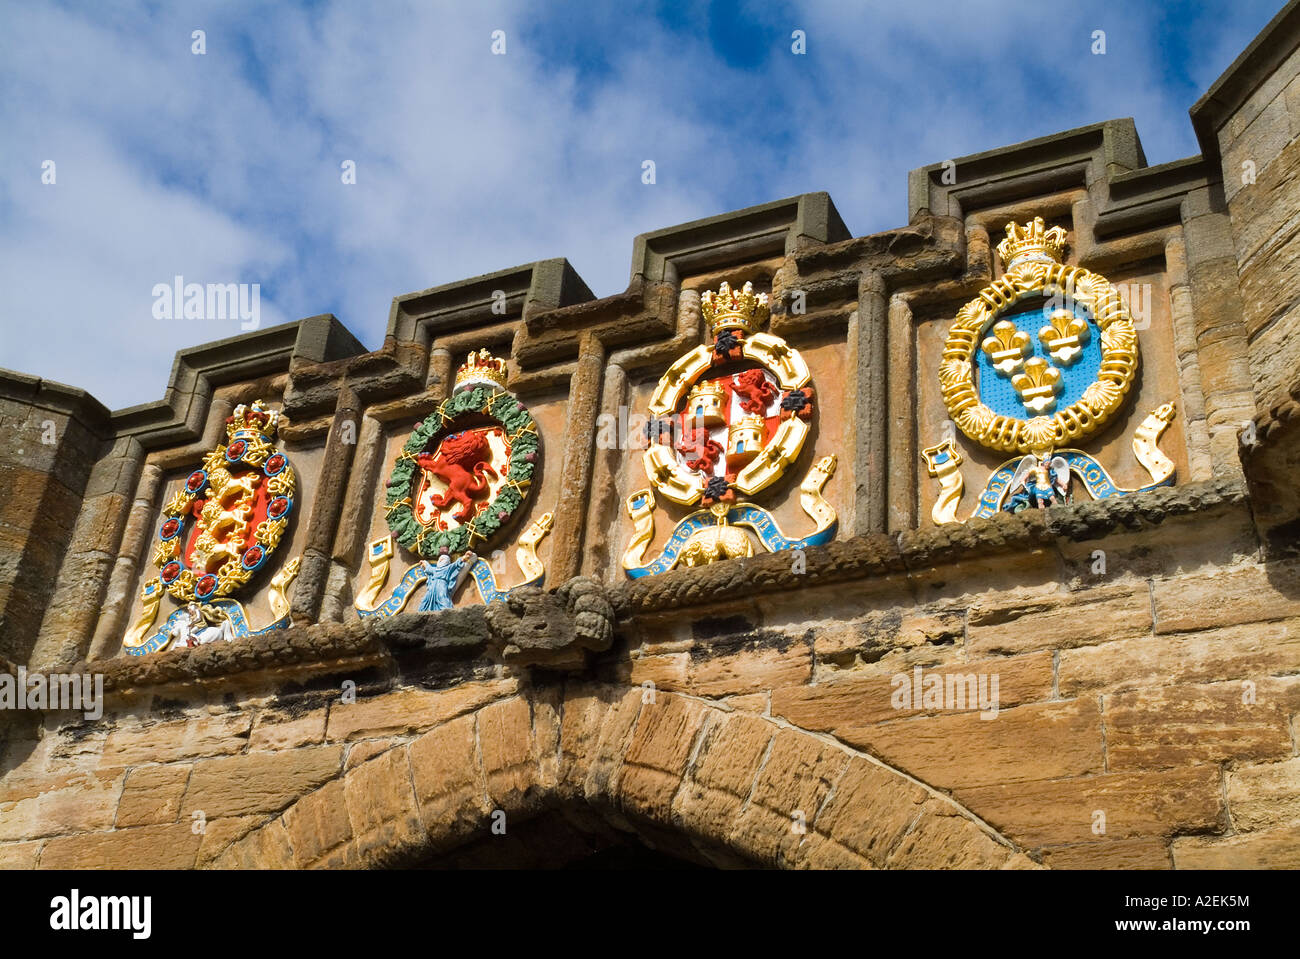 dh Linlithgow Palace outer gate LINLITHGOW LOTHIAN Stone carved painted heraldry coat of arms above entrance - Stock Image